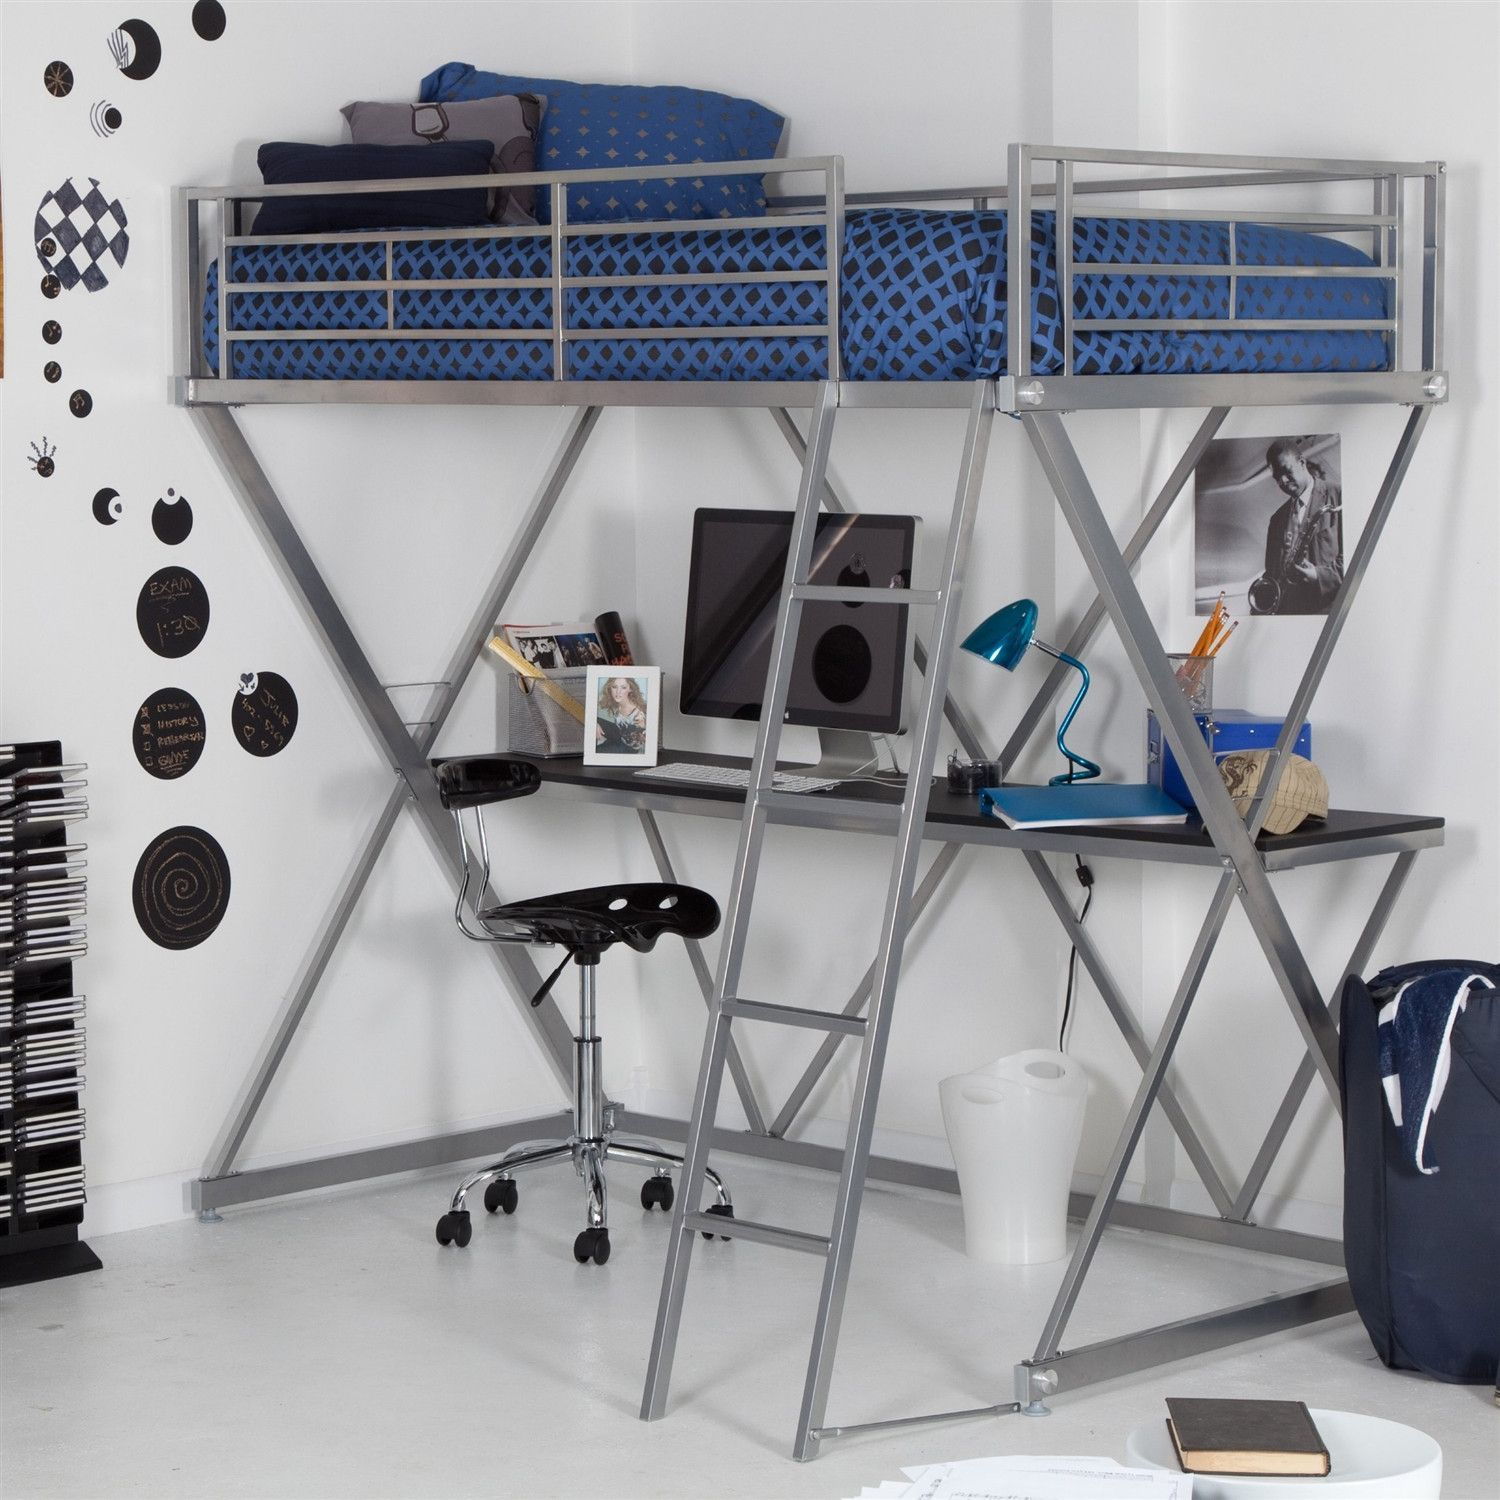 Metal loft bed with desk underneath  Modern Bunk Bed style Twin Loft Bed with Desk in Silver Metal Finish